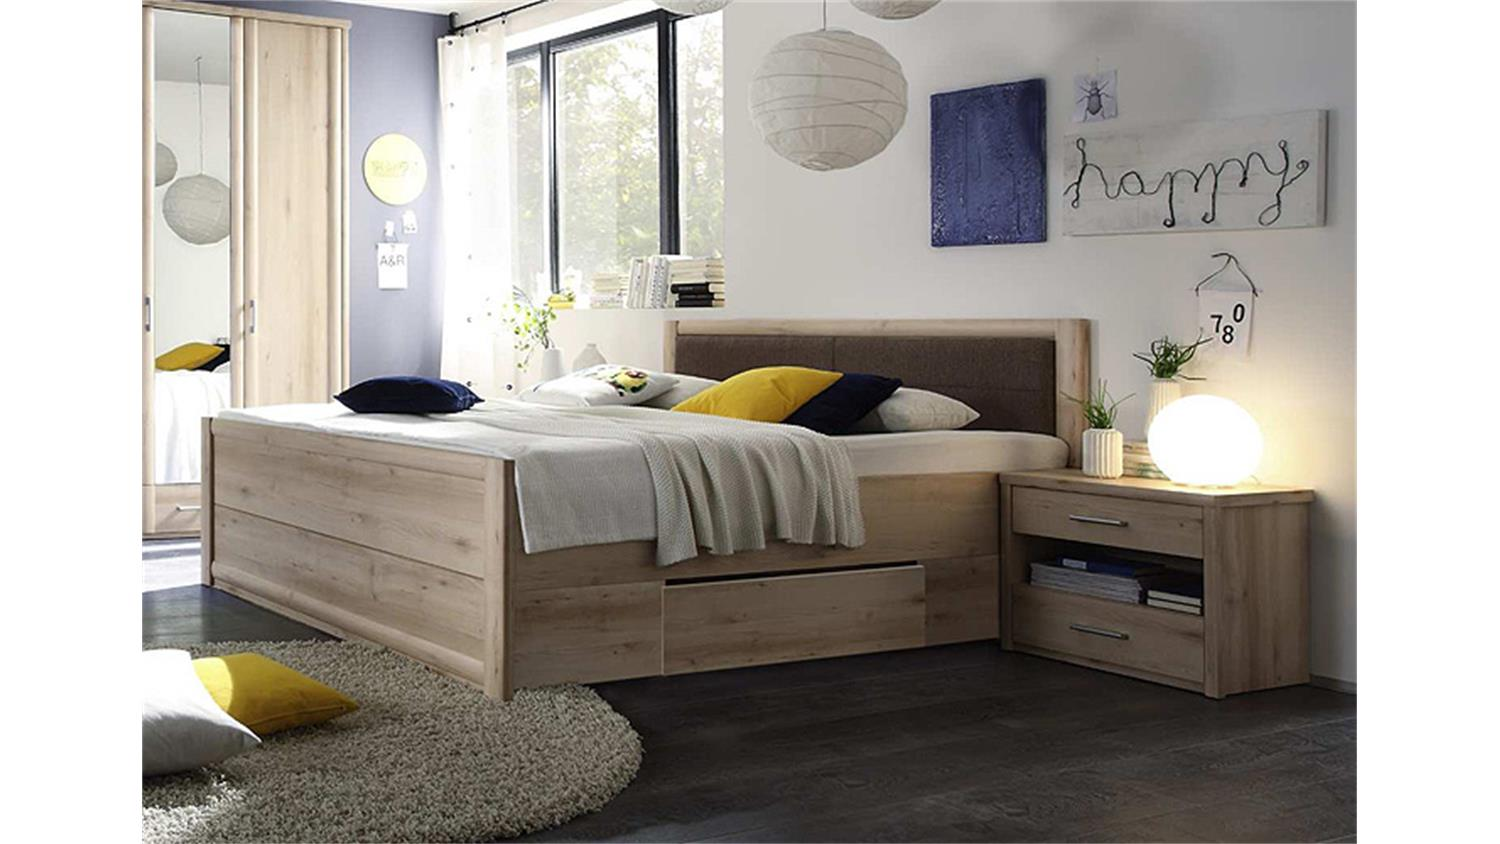 bettanlage 180 x200 cm classic bett buche schubk sten 2 nachtkommoden. Black Bedroom Furniture Sets. Home Design Ideas